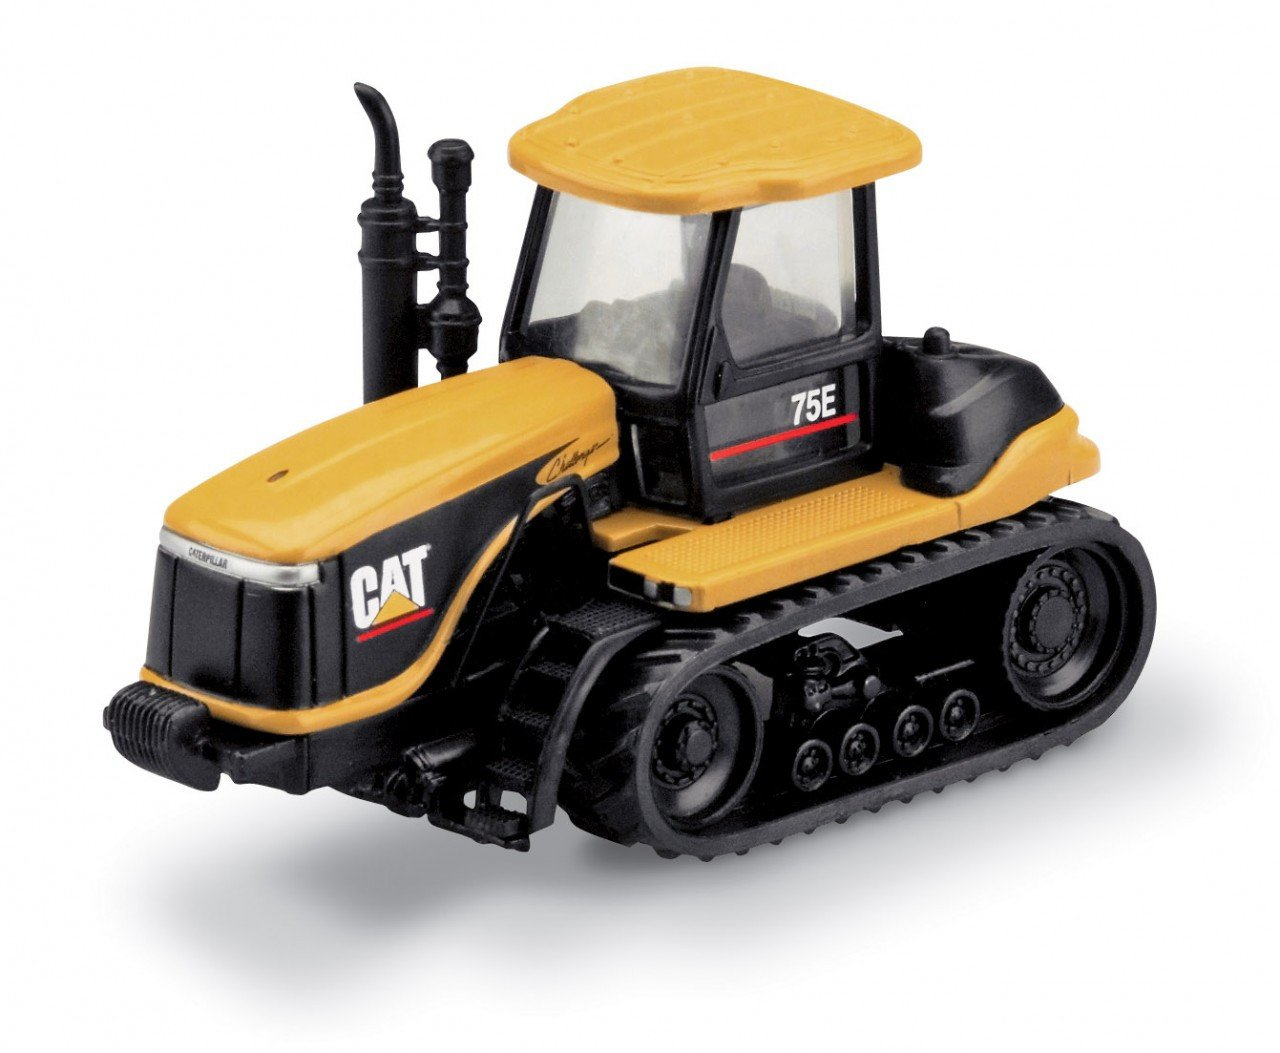 Agricultural Tractors Caterpillar Challenger 75e Service